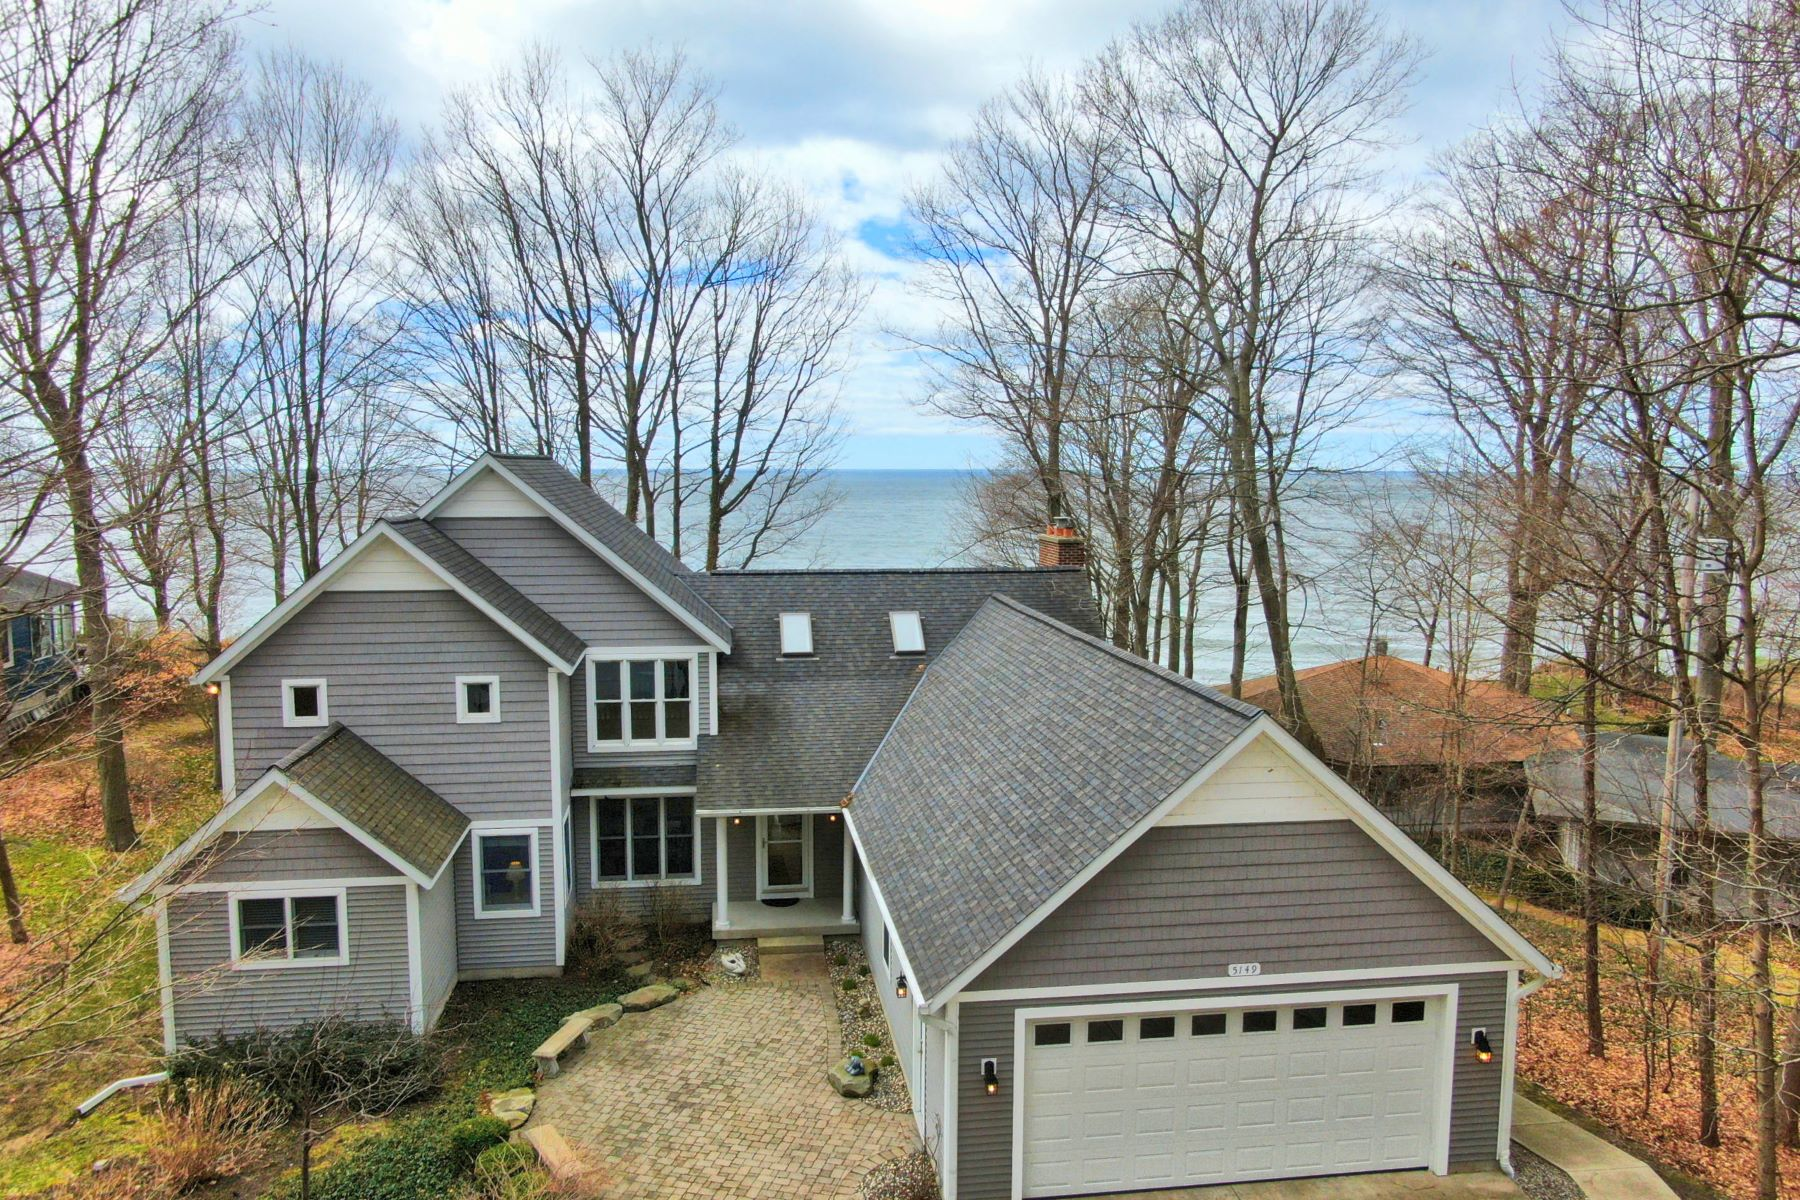 Single Family Homes for Sale at Exquisite Waterfront Estate with Coveted Frontage 5149 Rosabelle Beach Avenue Holland, Michigan 49424 United States